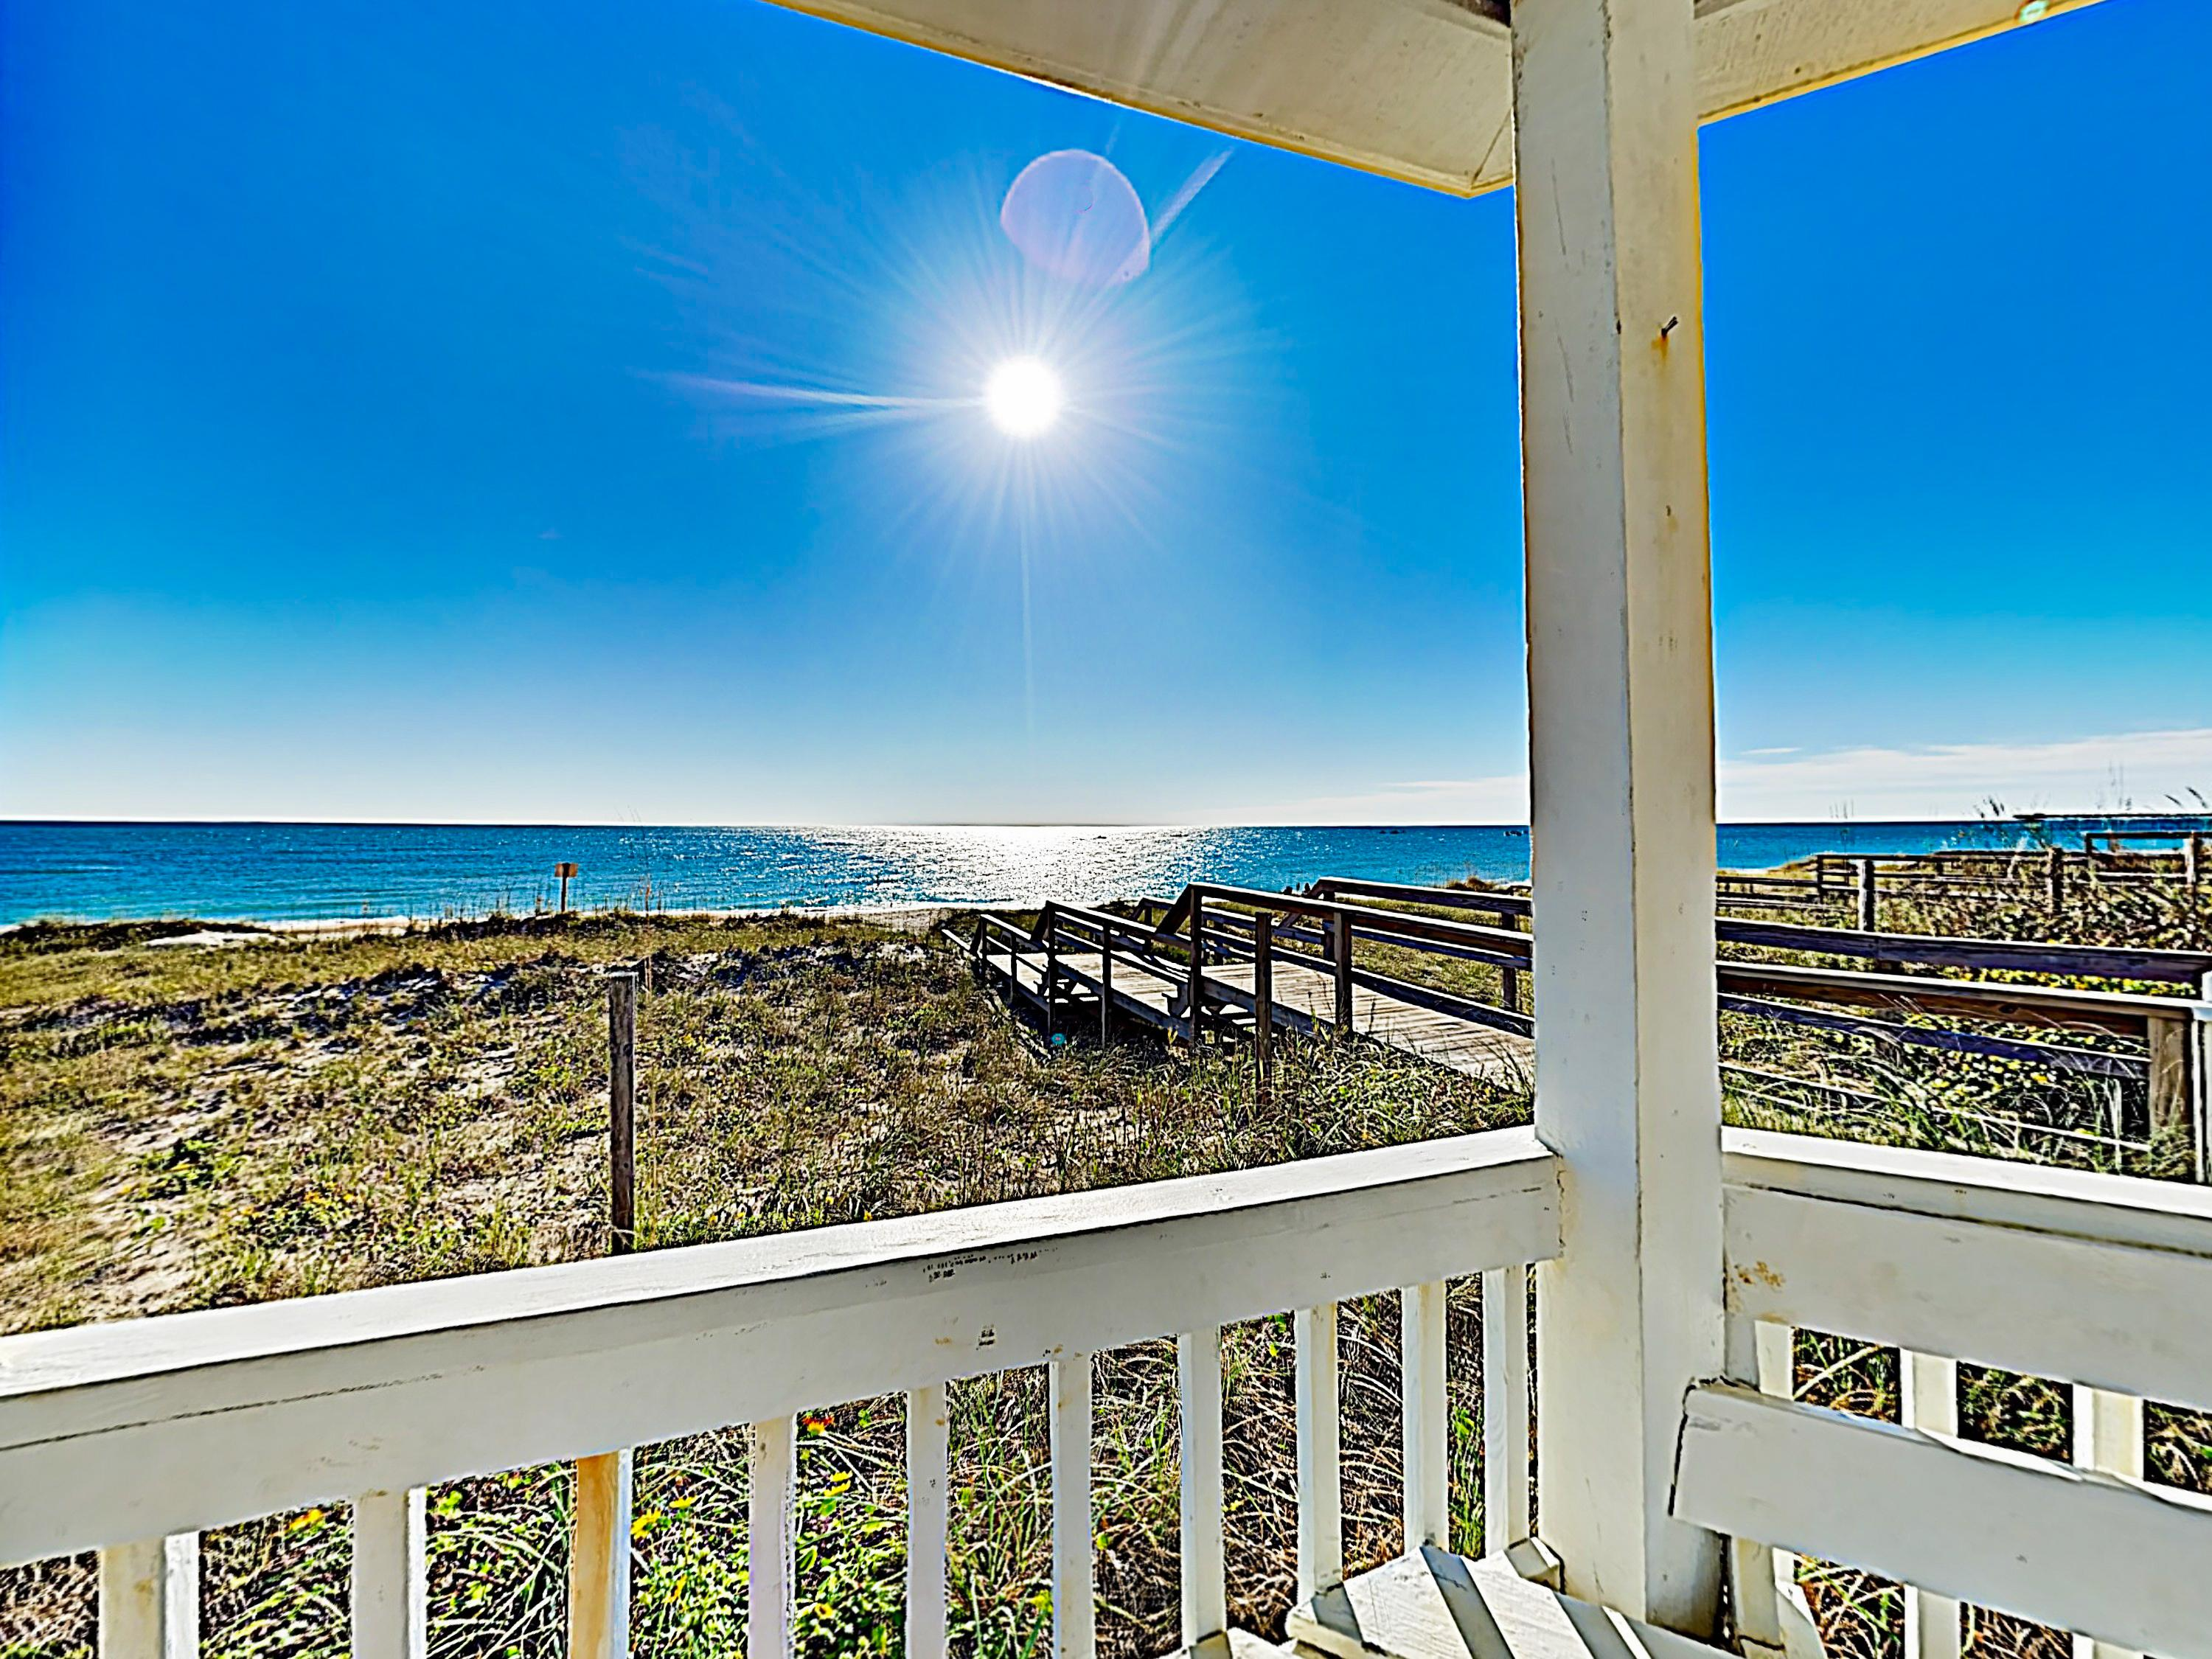 Stroll to the pristine waters of Kure Beach, located just across the main boulevard.